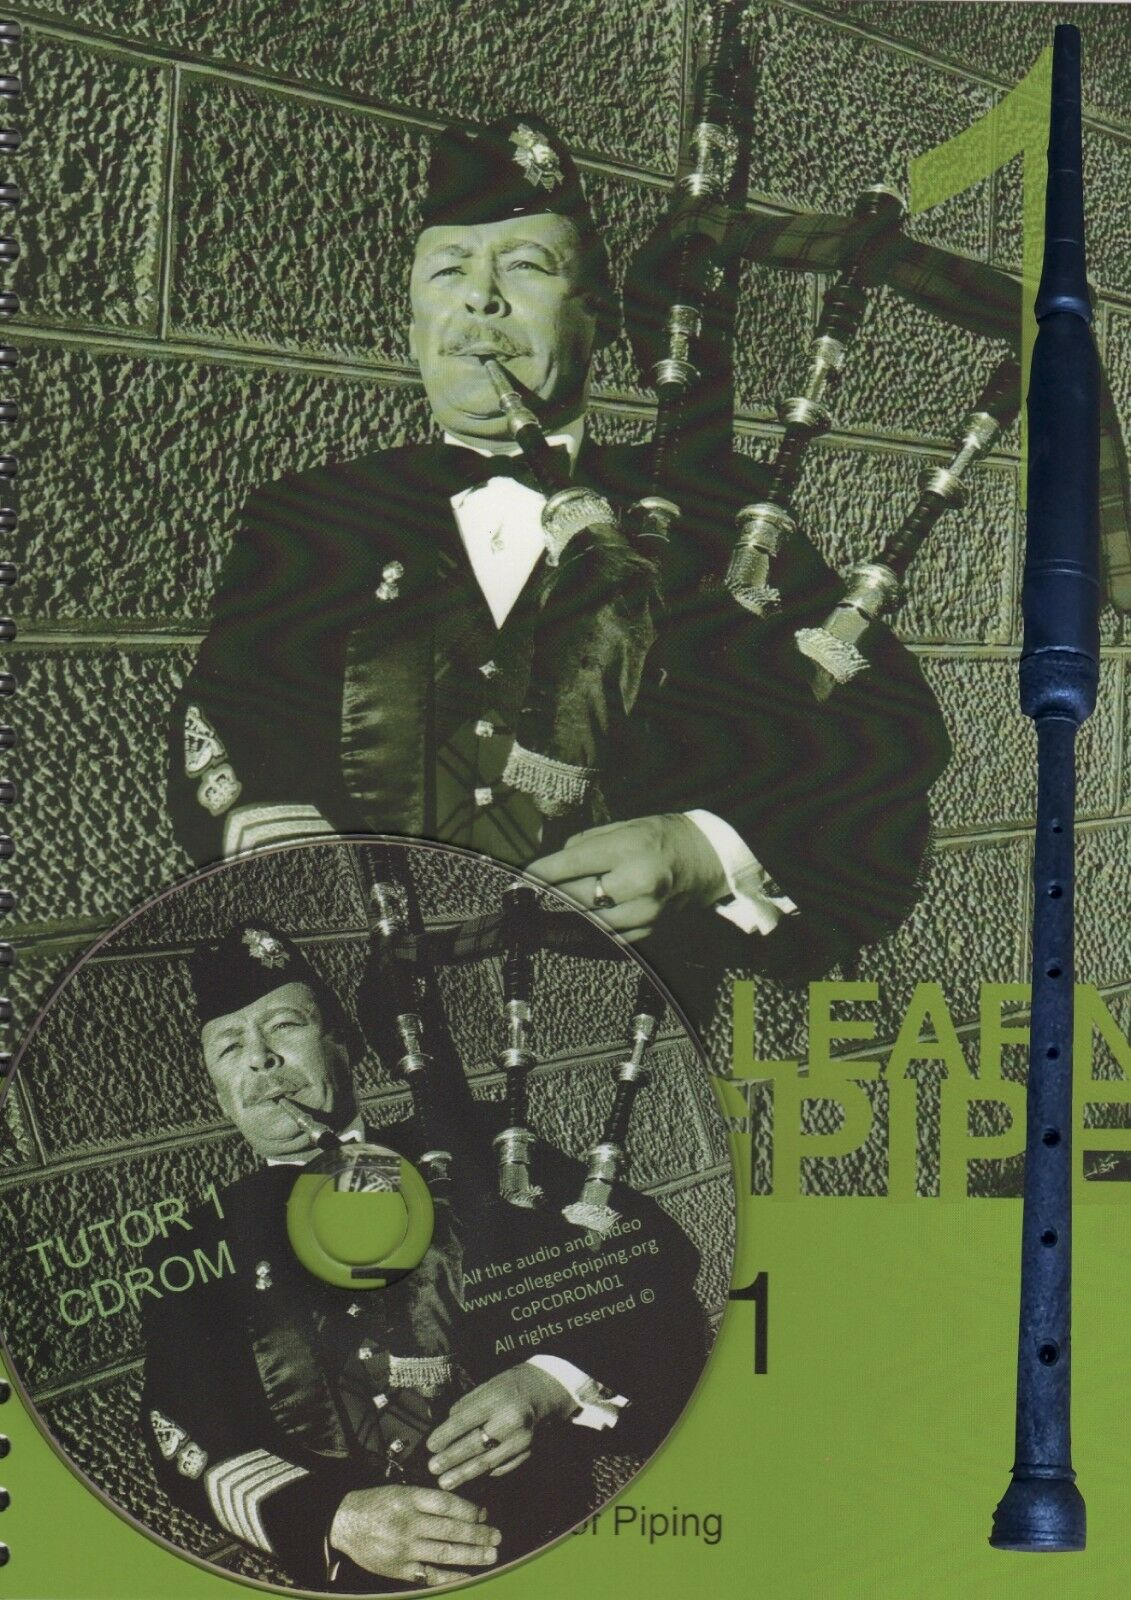 Learn Great Highland Bagpipe Tutor Book + Practice Chanter + Reed